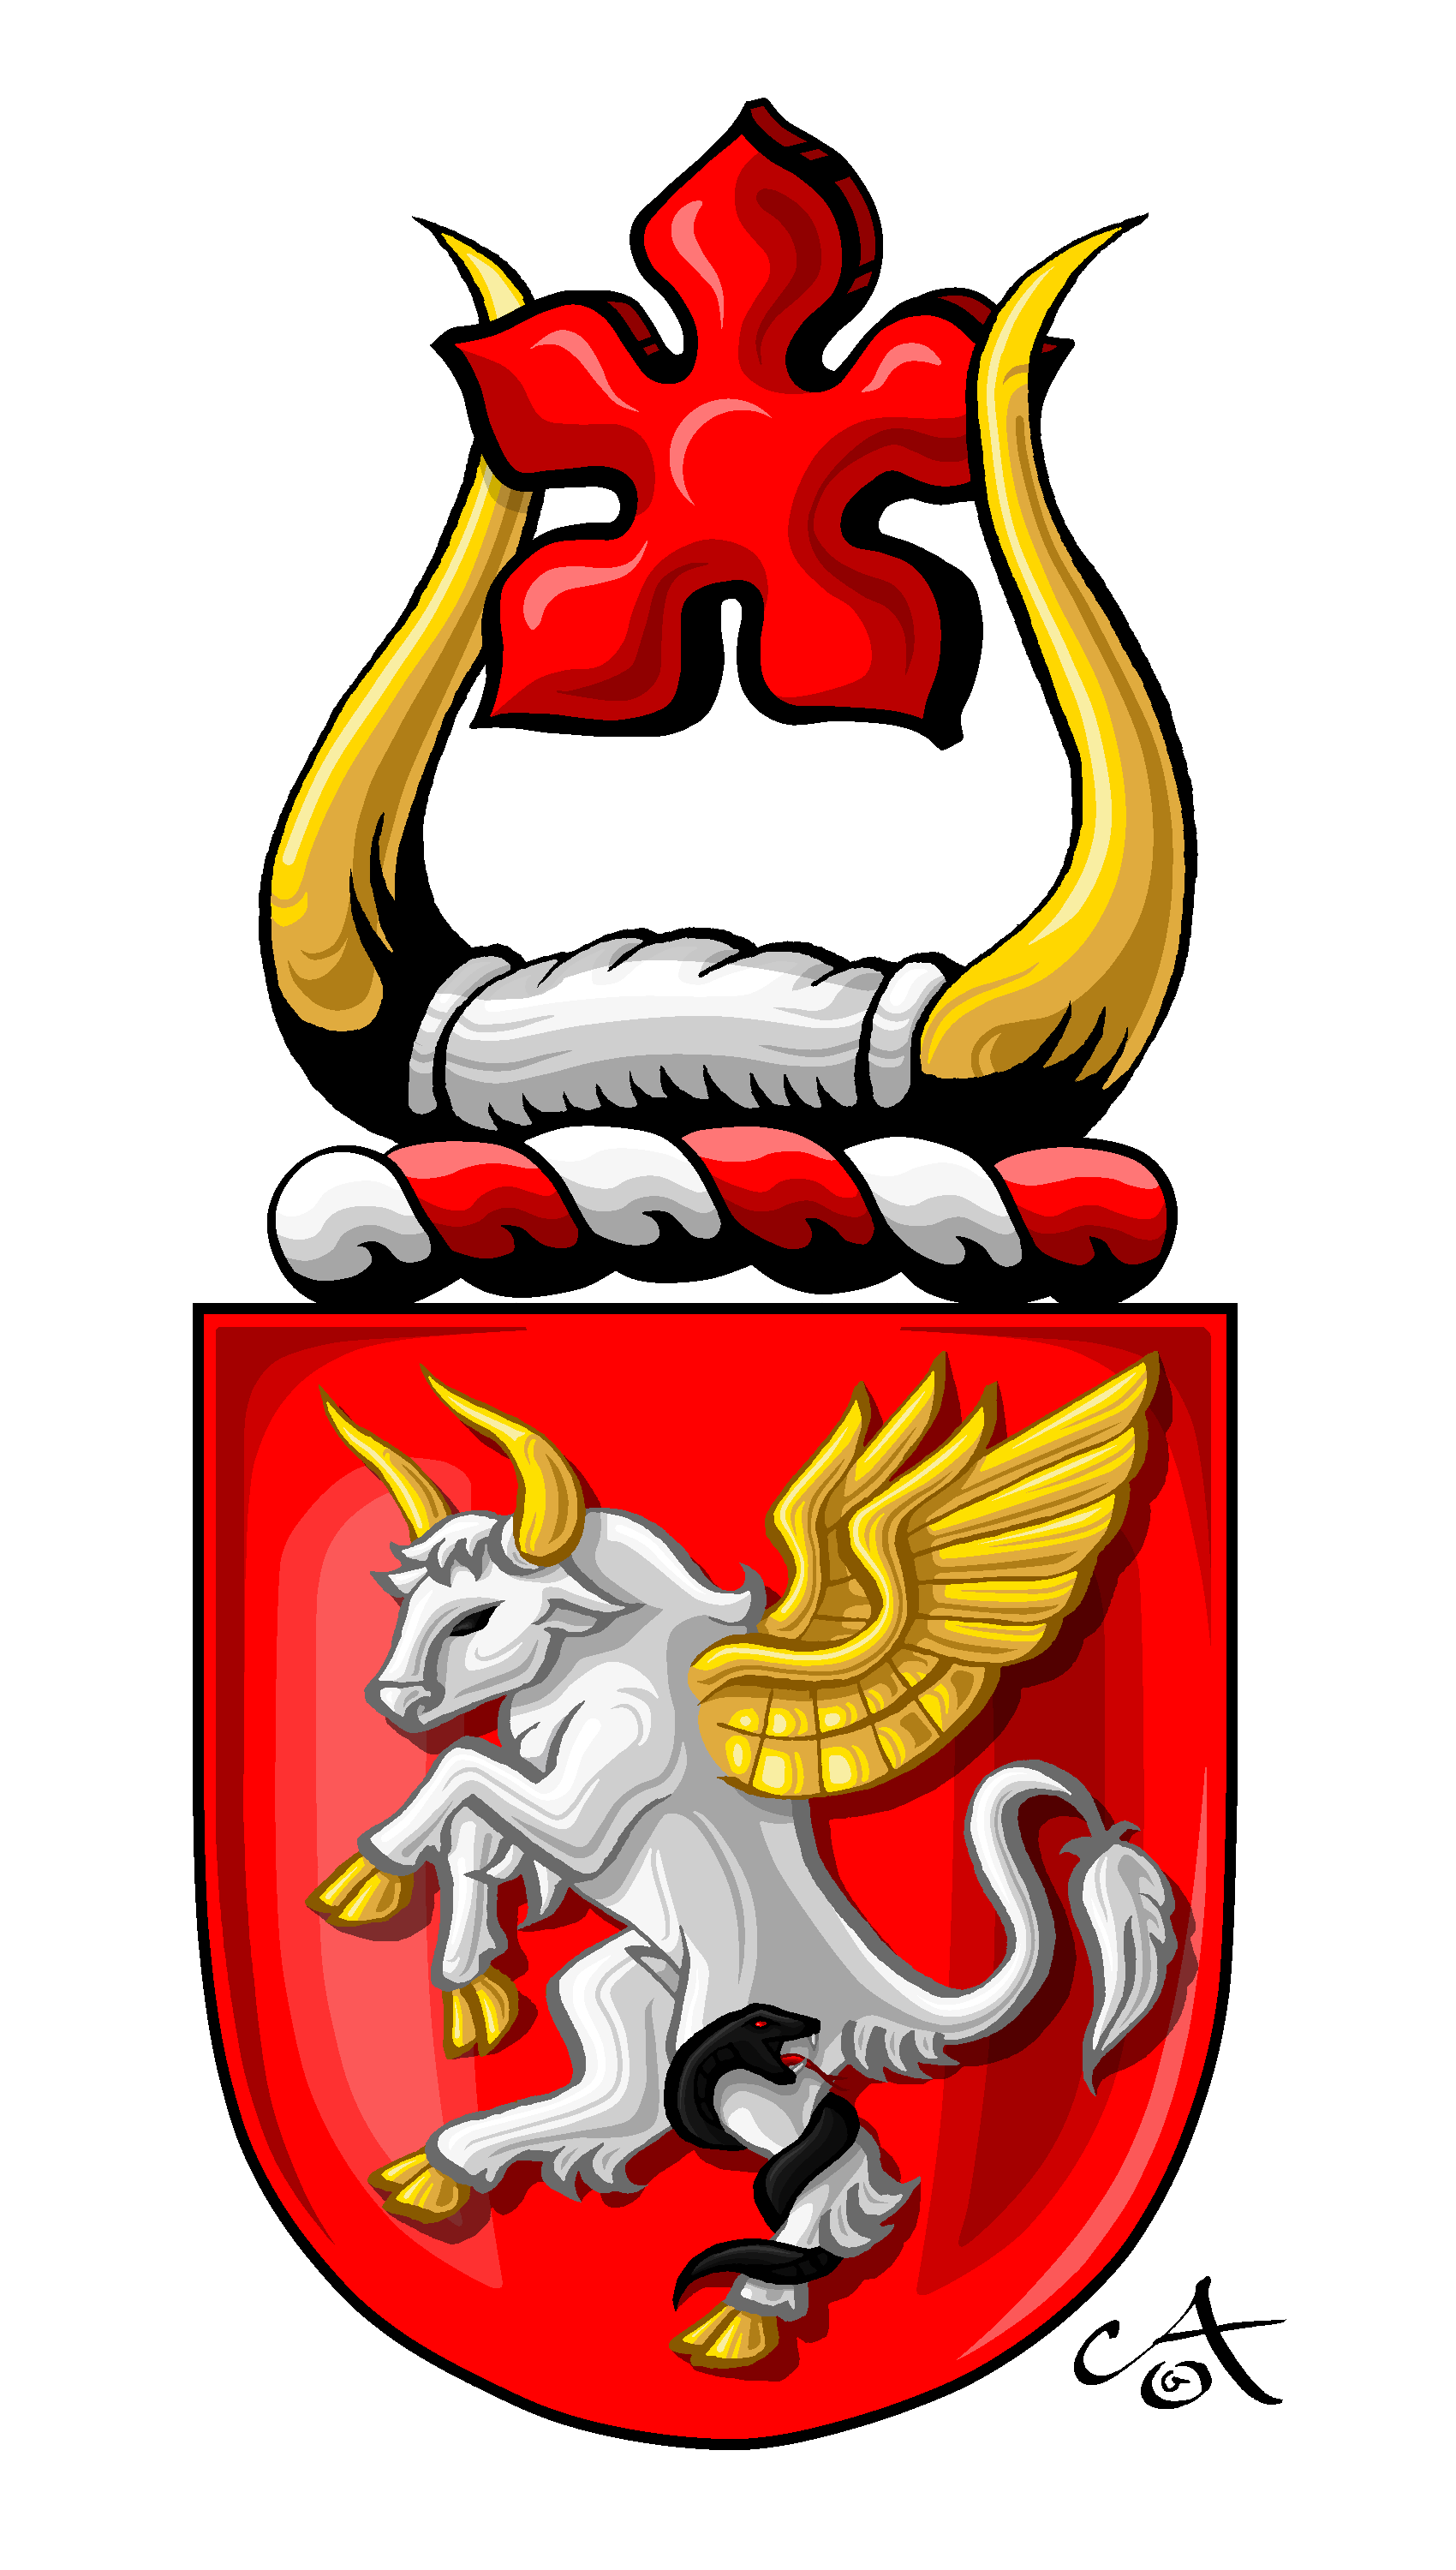 XmanABQ's Shield and Crest